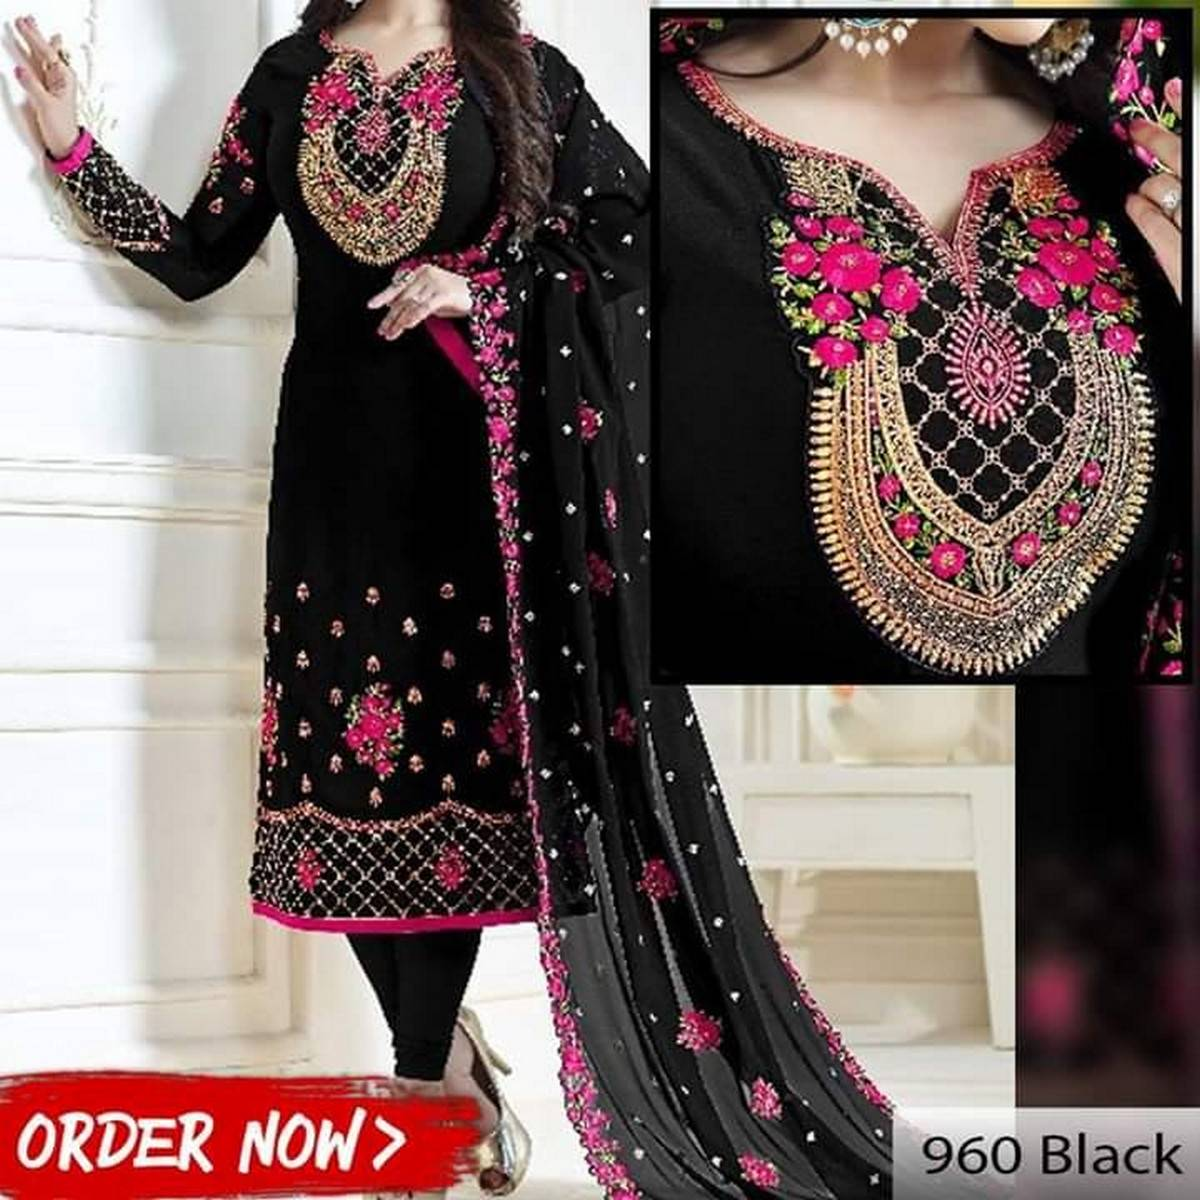 Black Chiffon Embroidered Suit For Women - 3 Piece